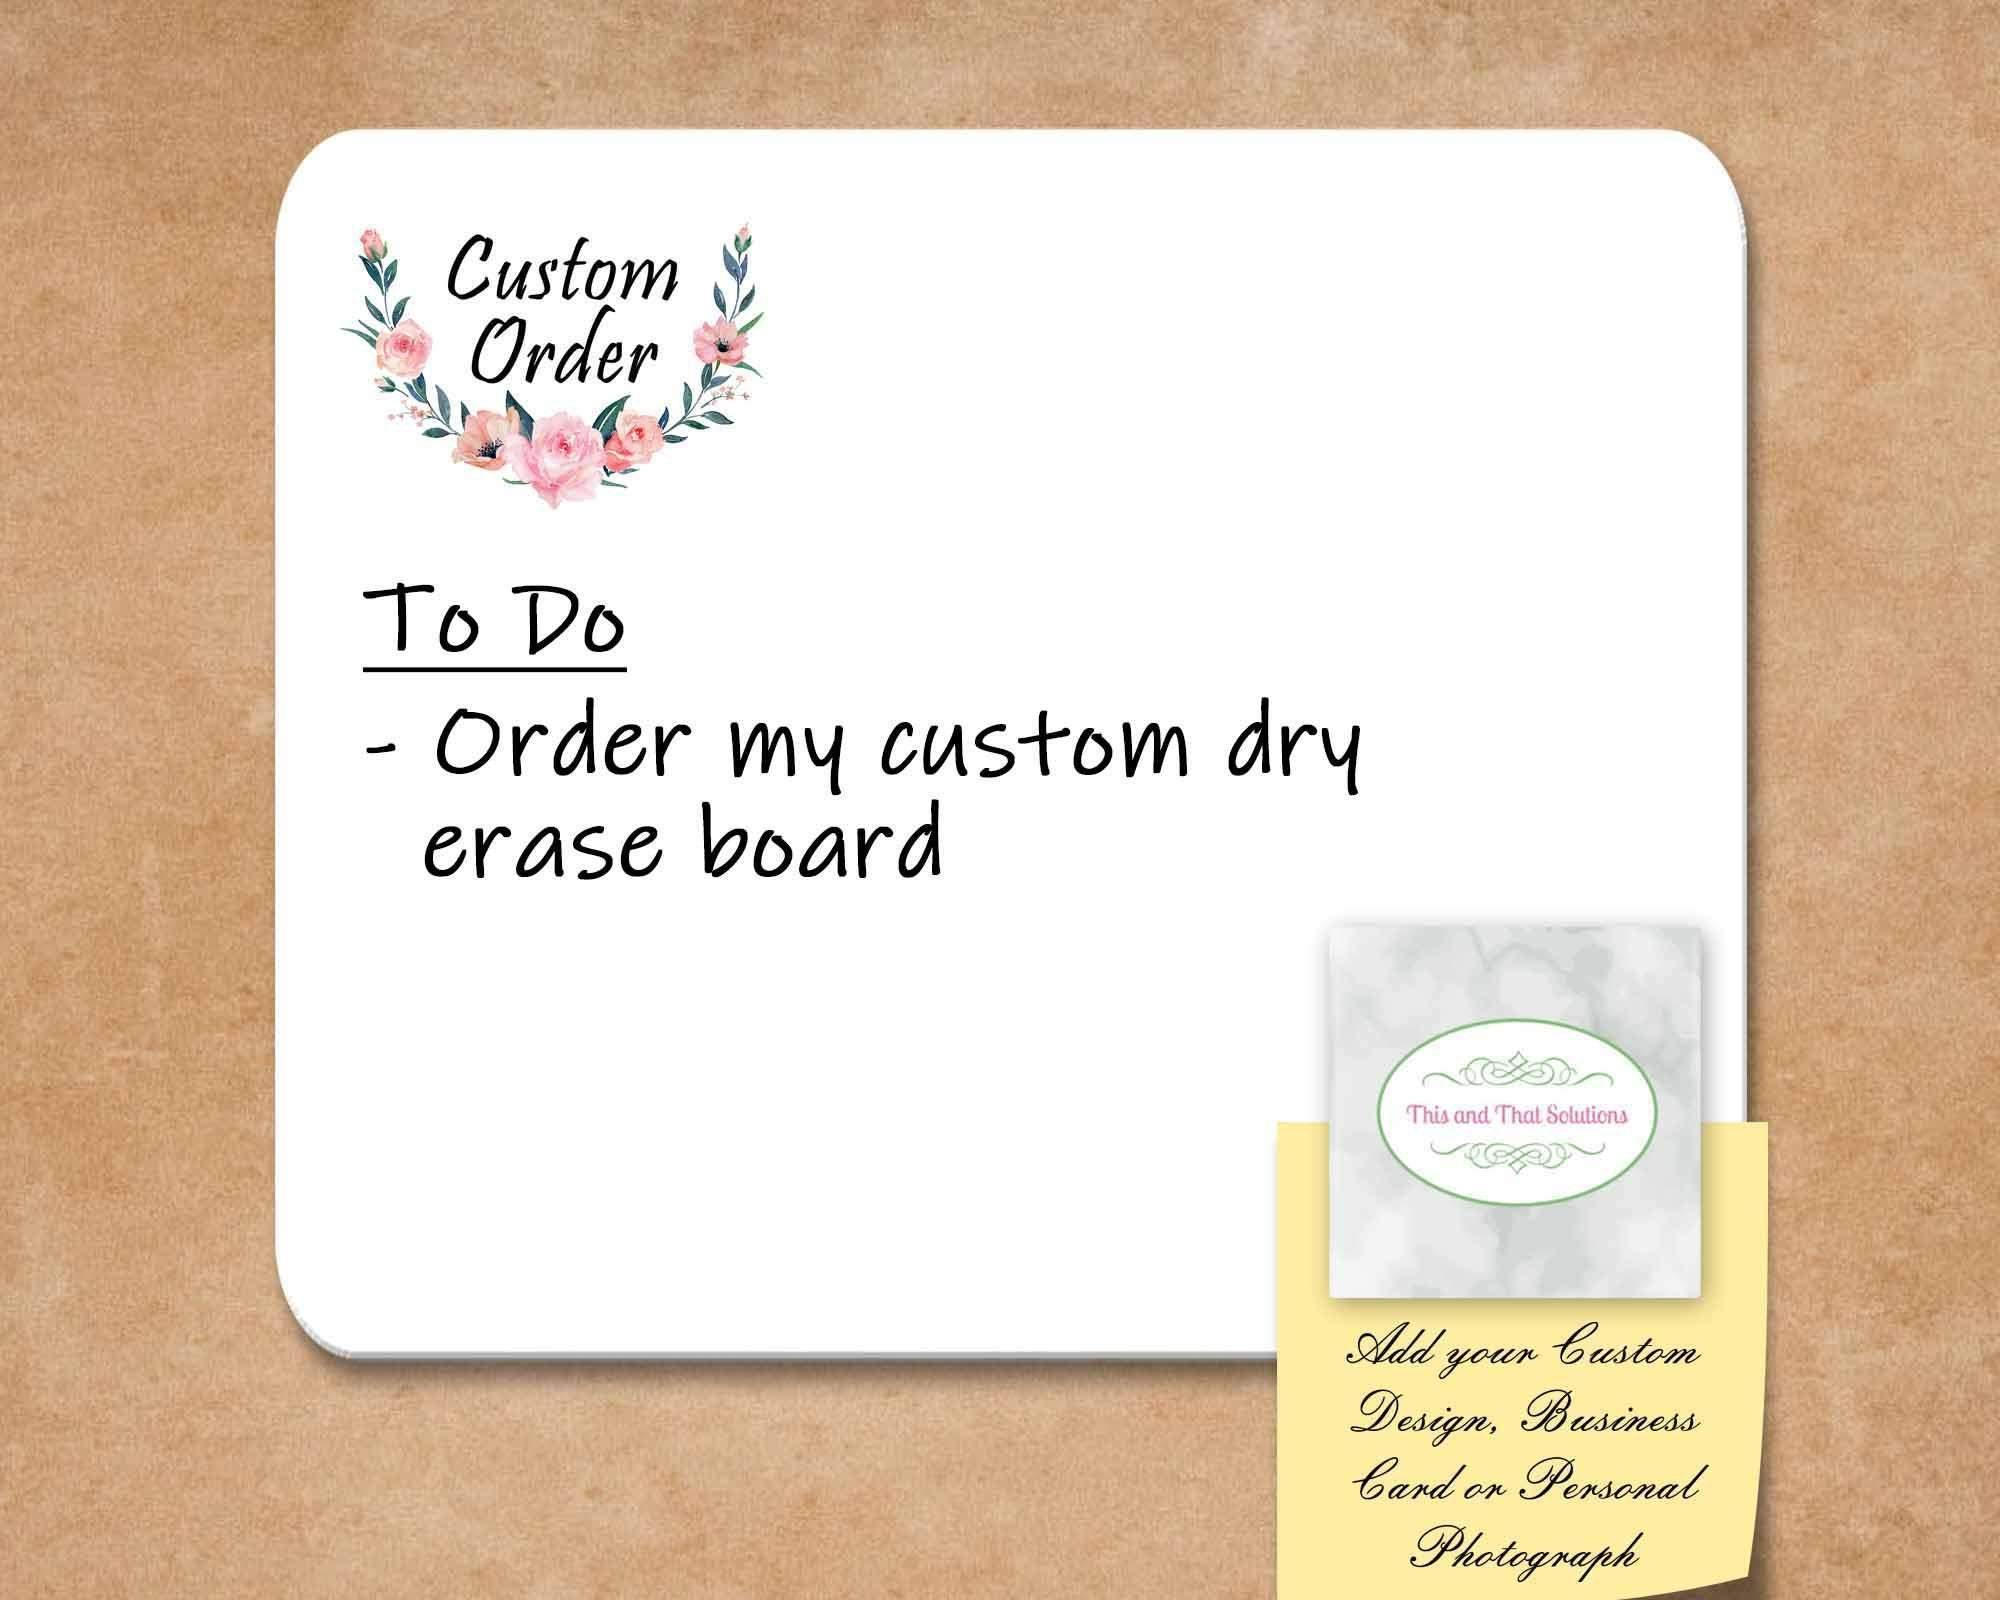 Dry Erase Boards | Customized Dry Erase Boards | Personalized Office Accessories | Custom Order | This and That Solutions | Personalized Gifts | Custom Home Décor